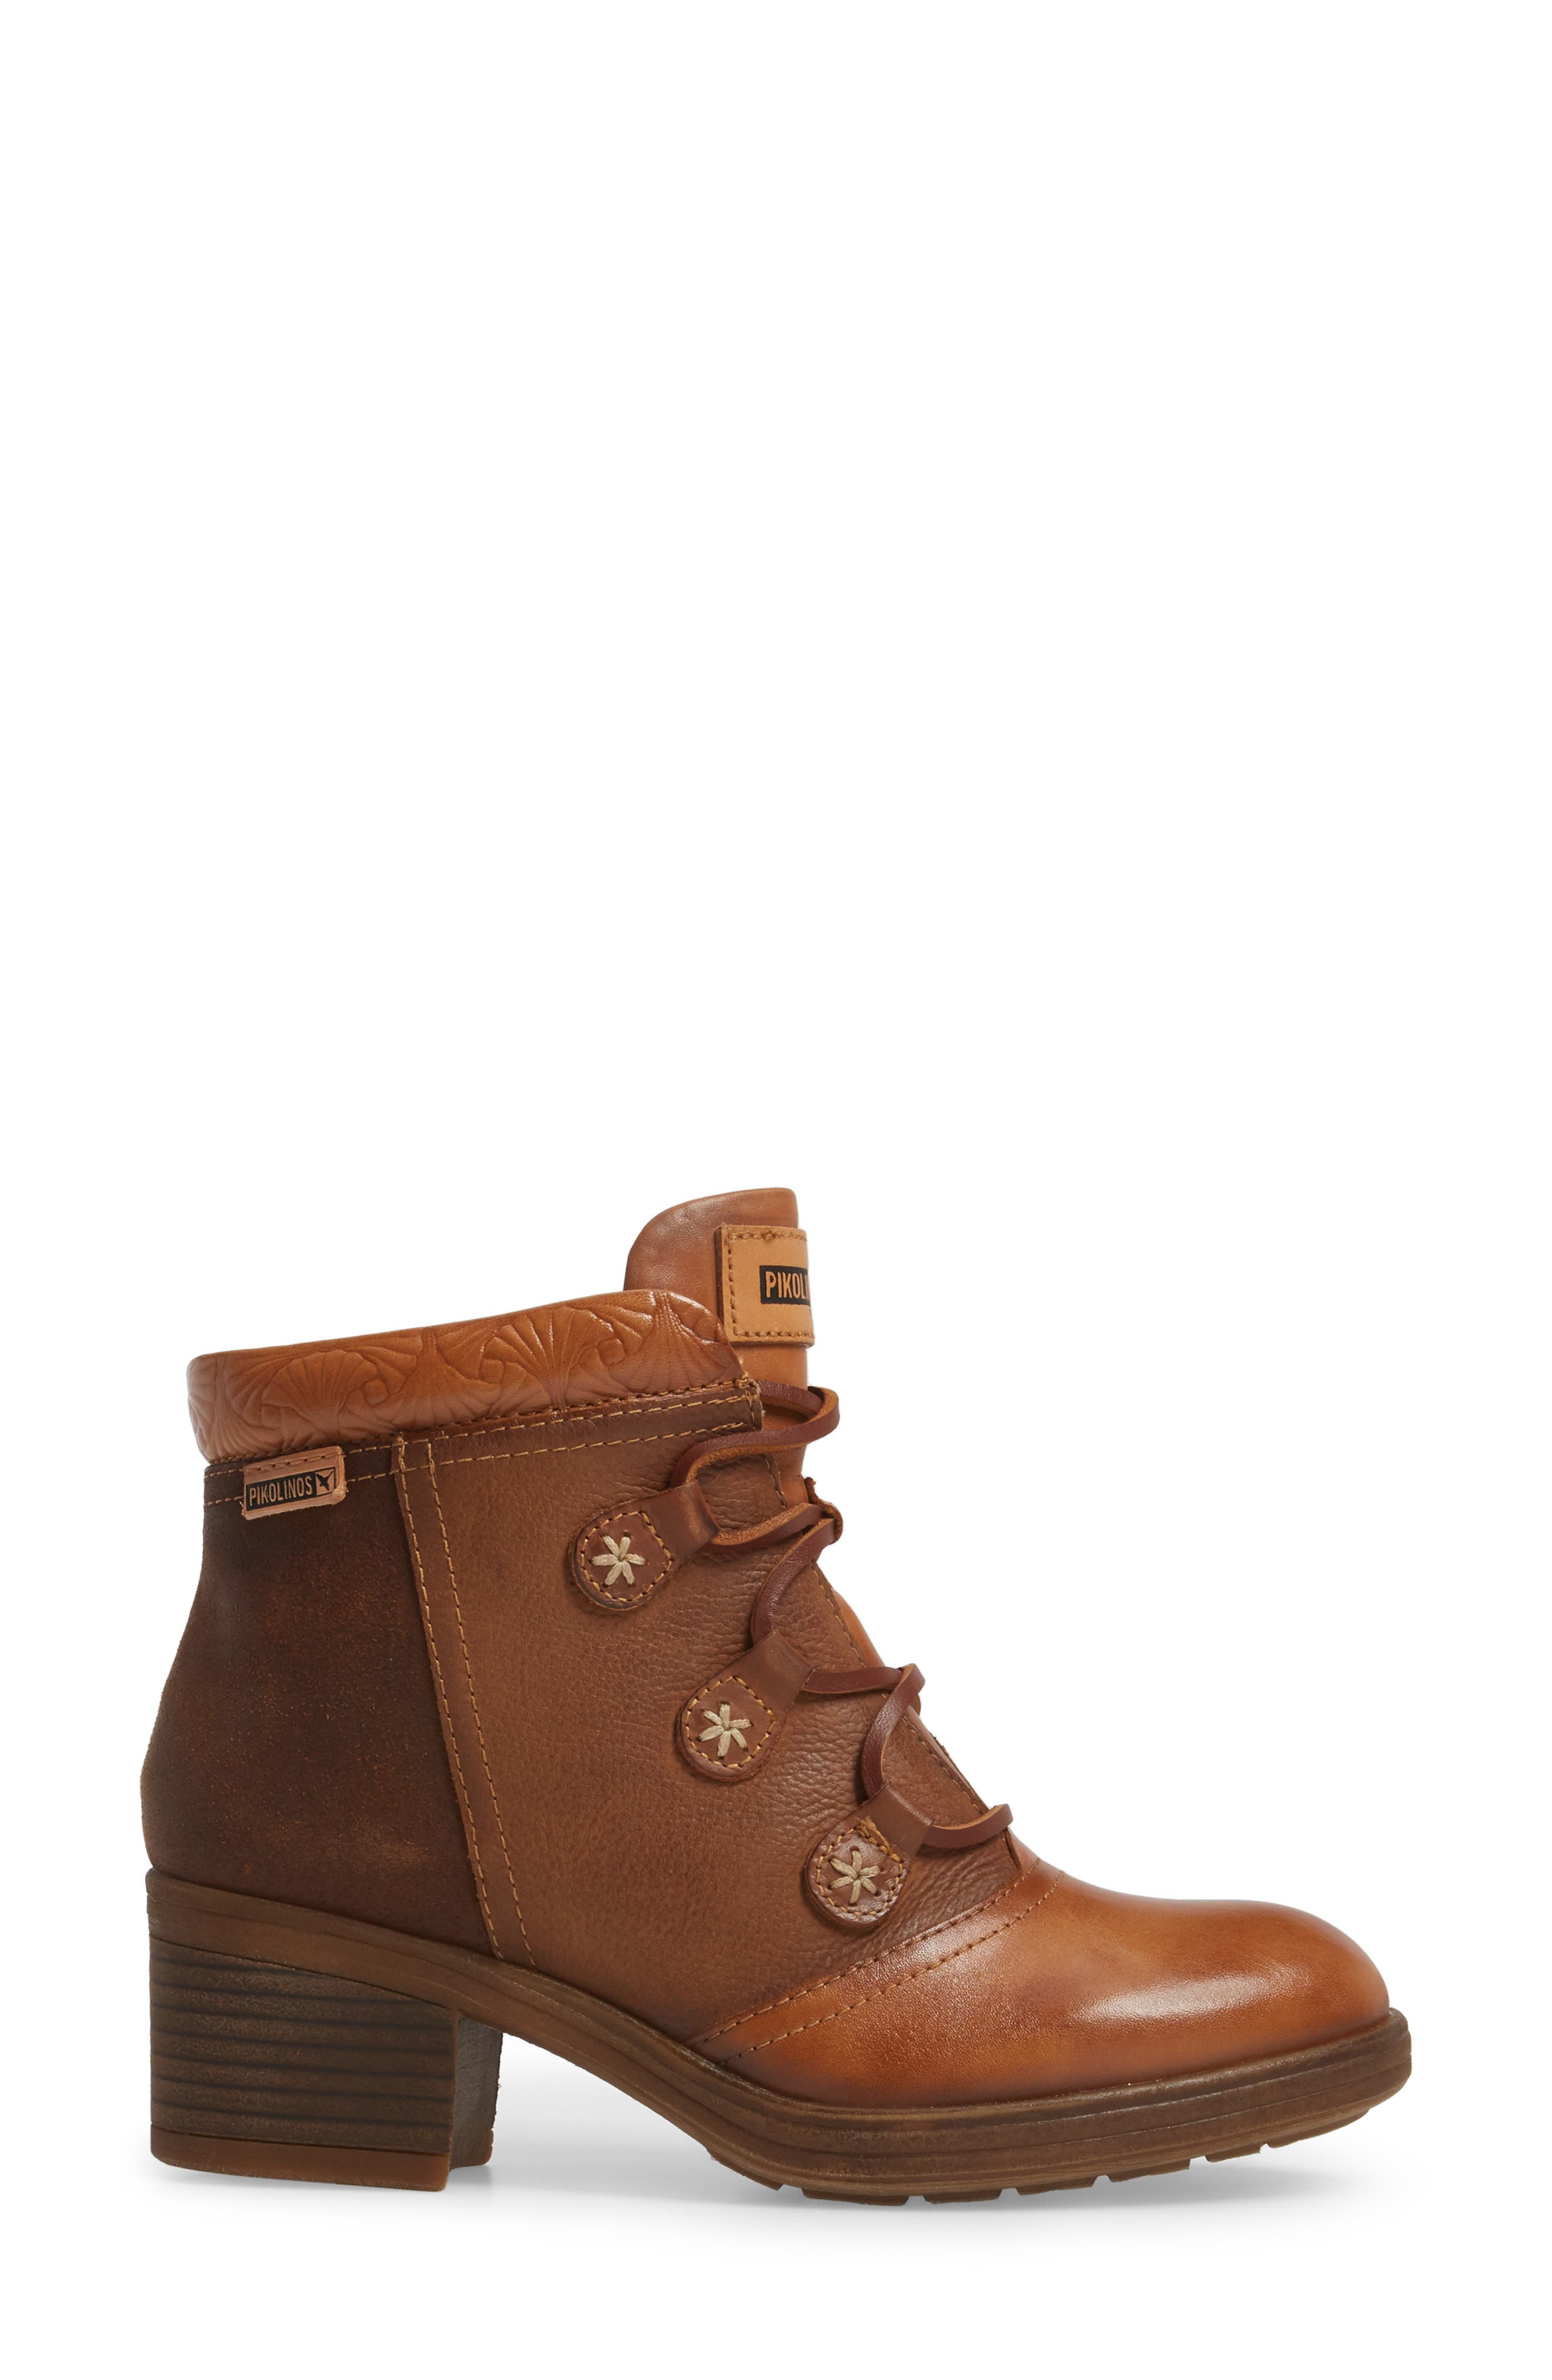 Lyon Lace-Up Boot,                             Alternate thumbnail 3, color,                             Brandy Leather